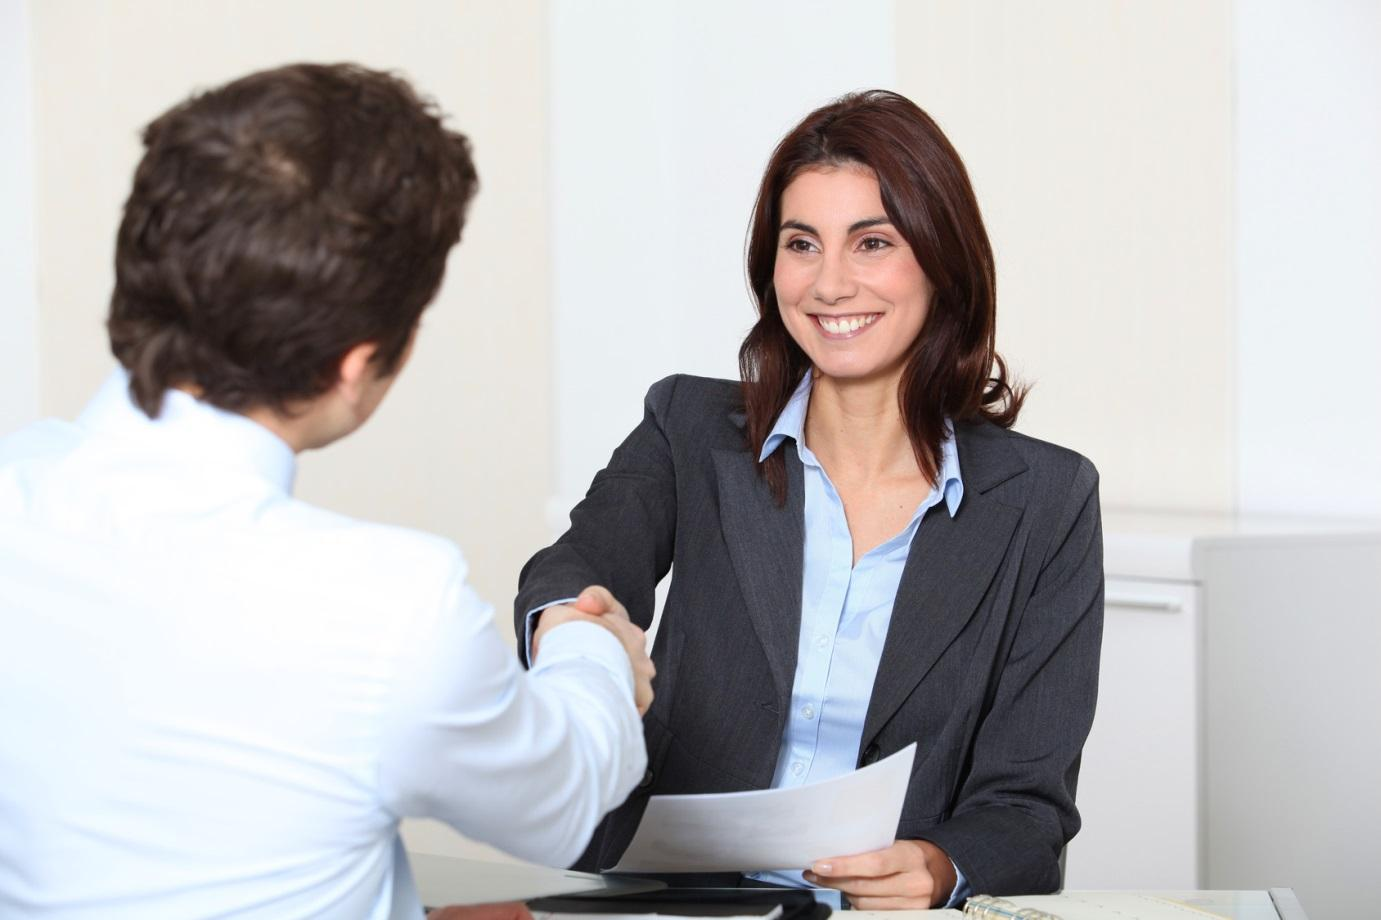 https://expertbeacon.com/sites/default/files/advice_when_resigning_and_you_have_an_active_non-compete_agreement.jpg